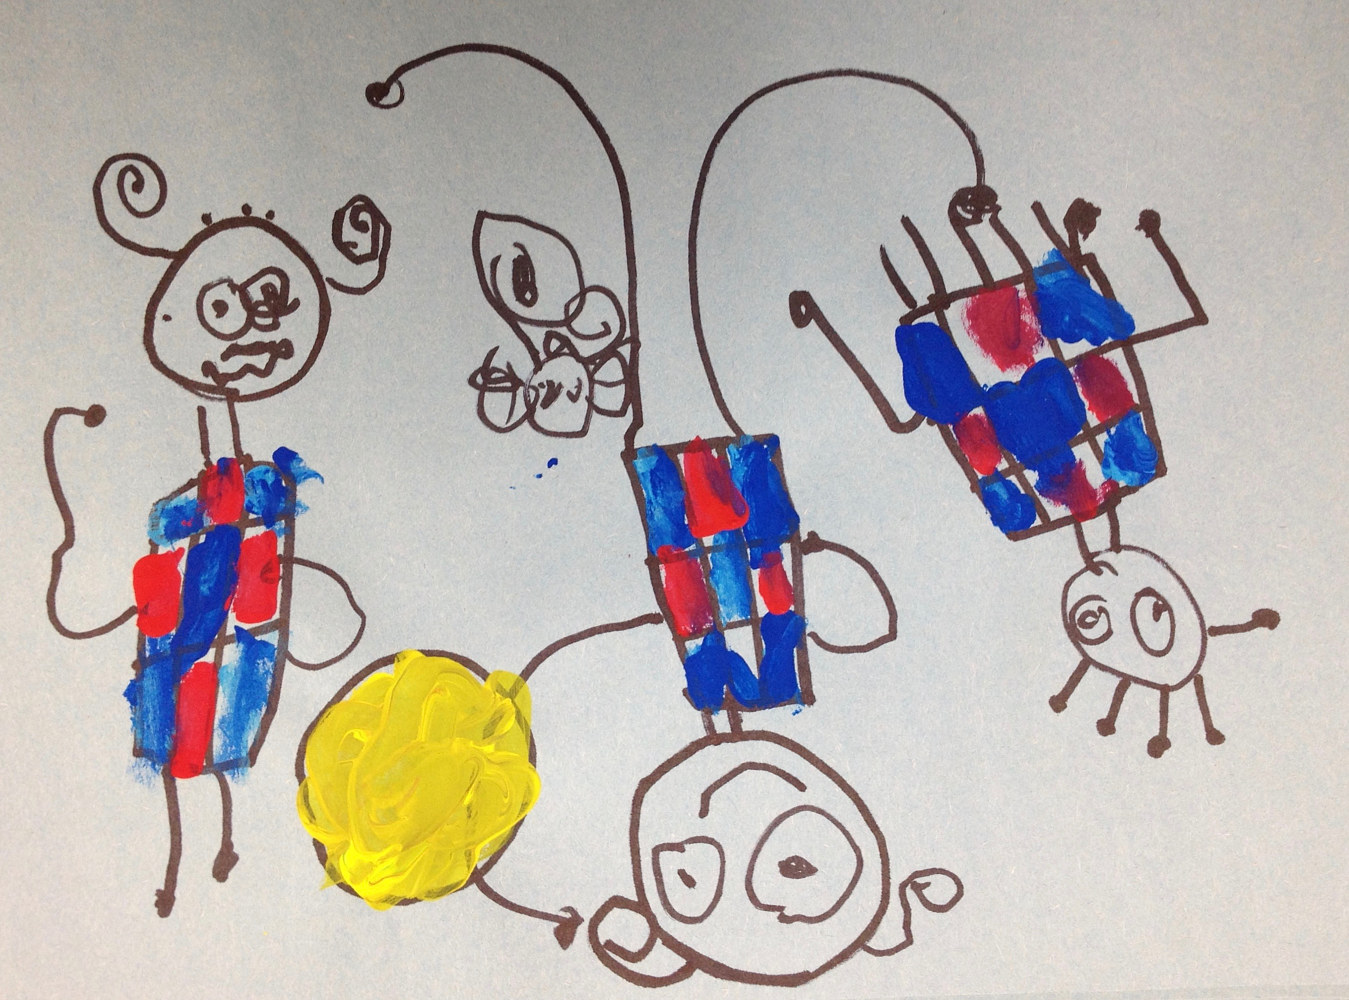 Gr. K—Joan Miró-like Children Playing Painting by Linnie (Victoria) Aikens Lindsay